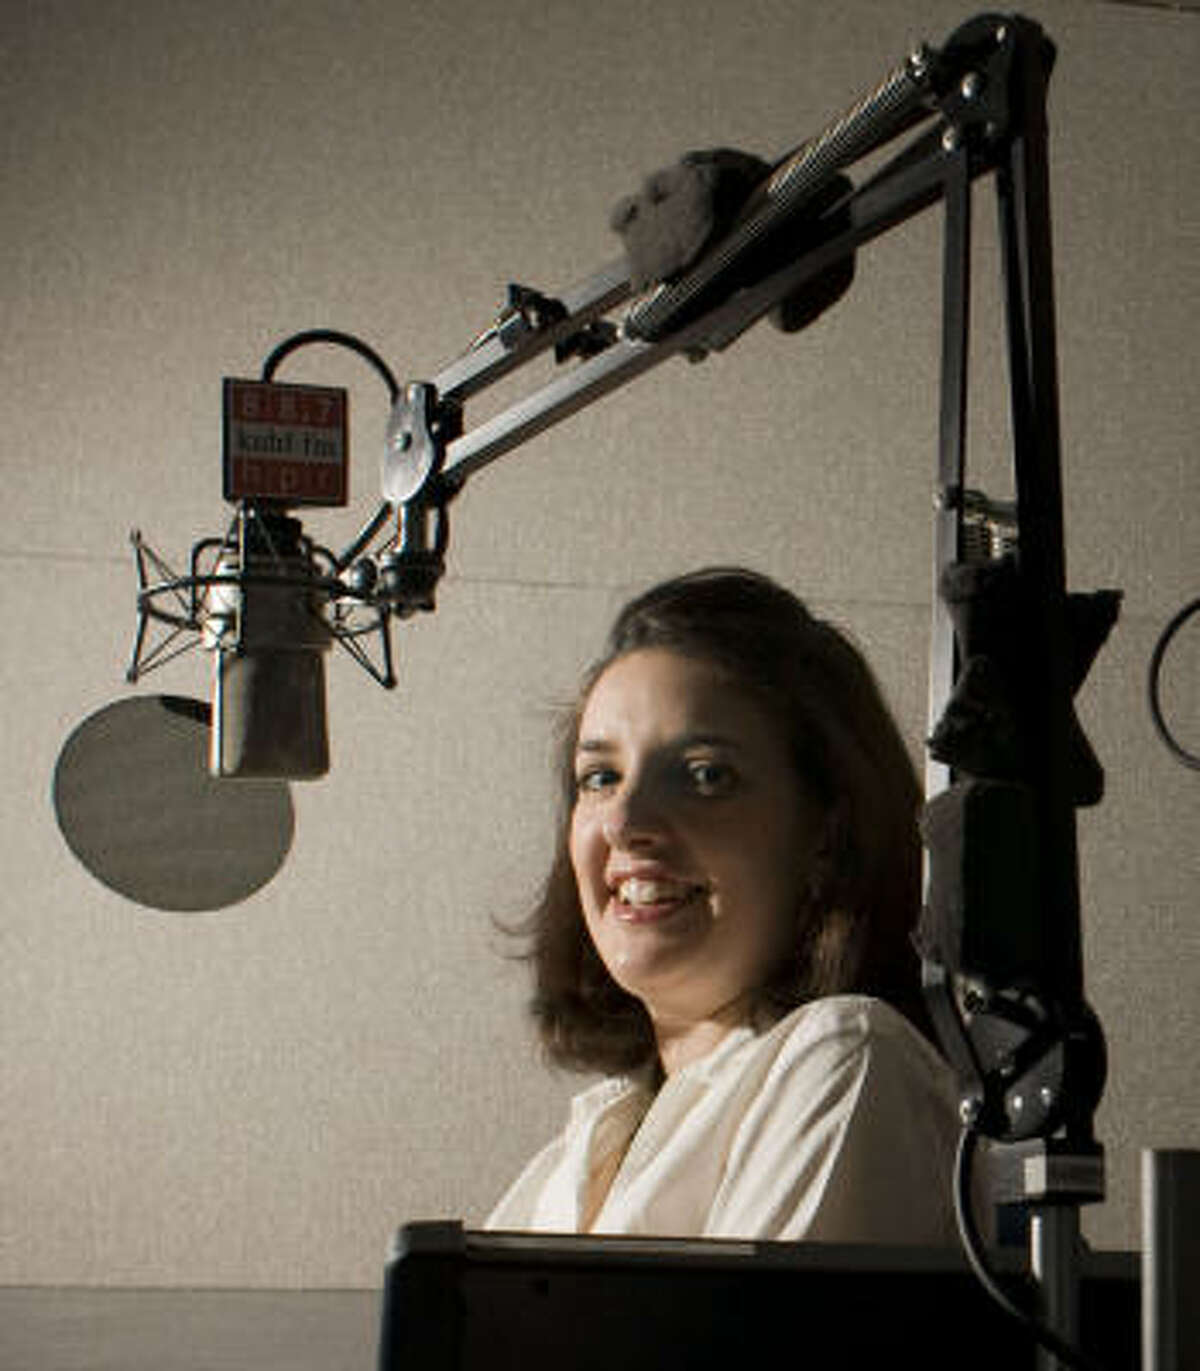 RADIO INTERNSHIP: Melissa Galvez, who started as an intern at Houston public radio station KUHF, now works there part-time.